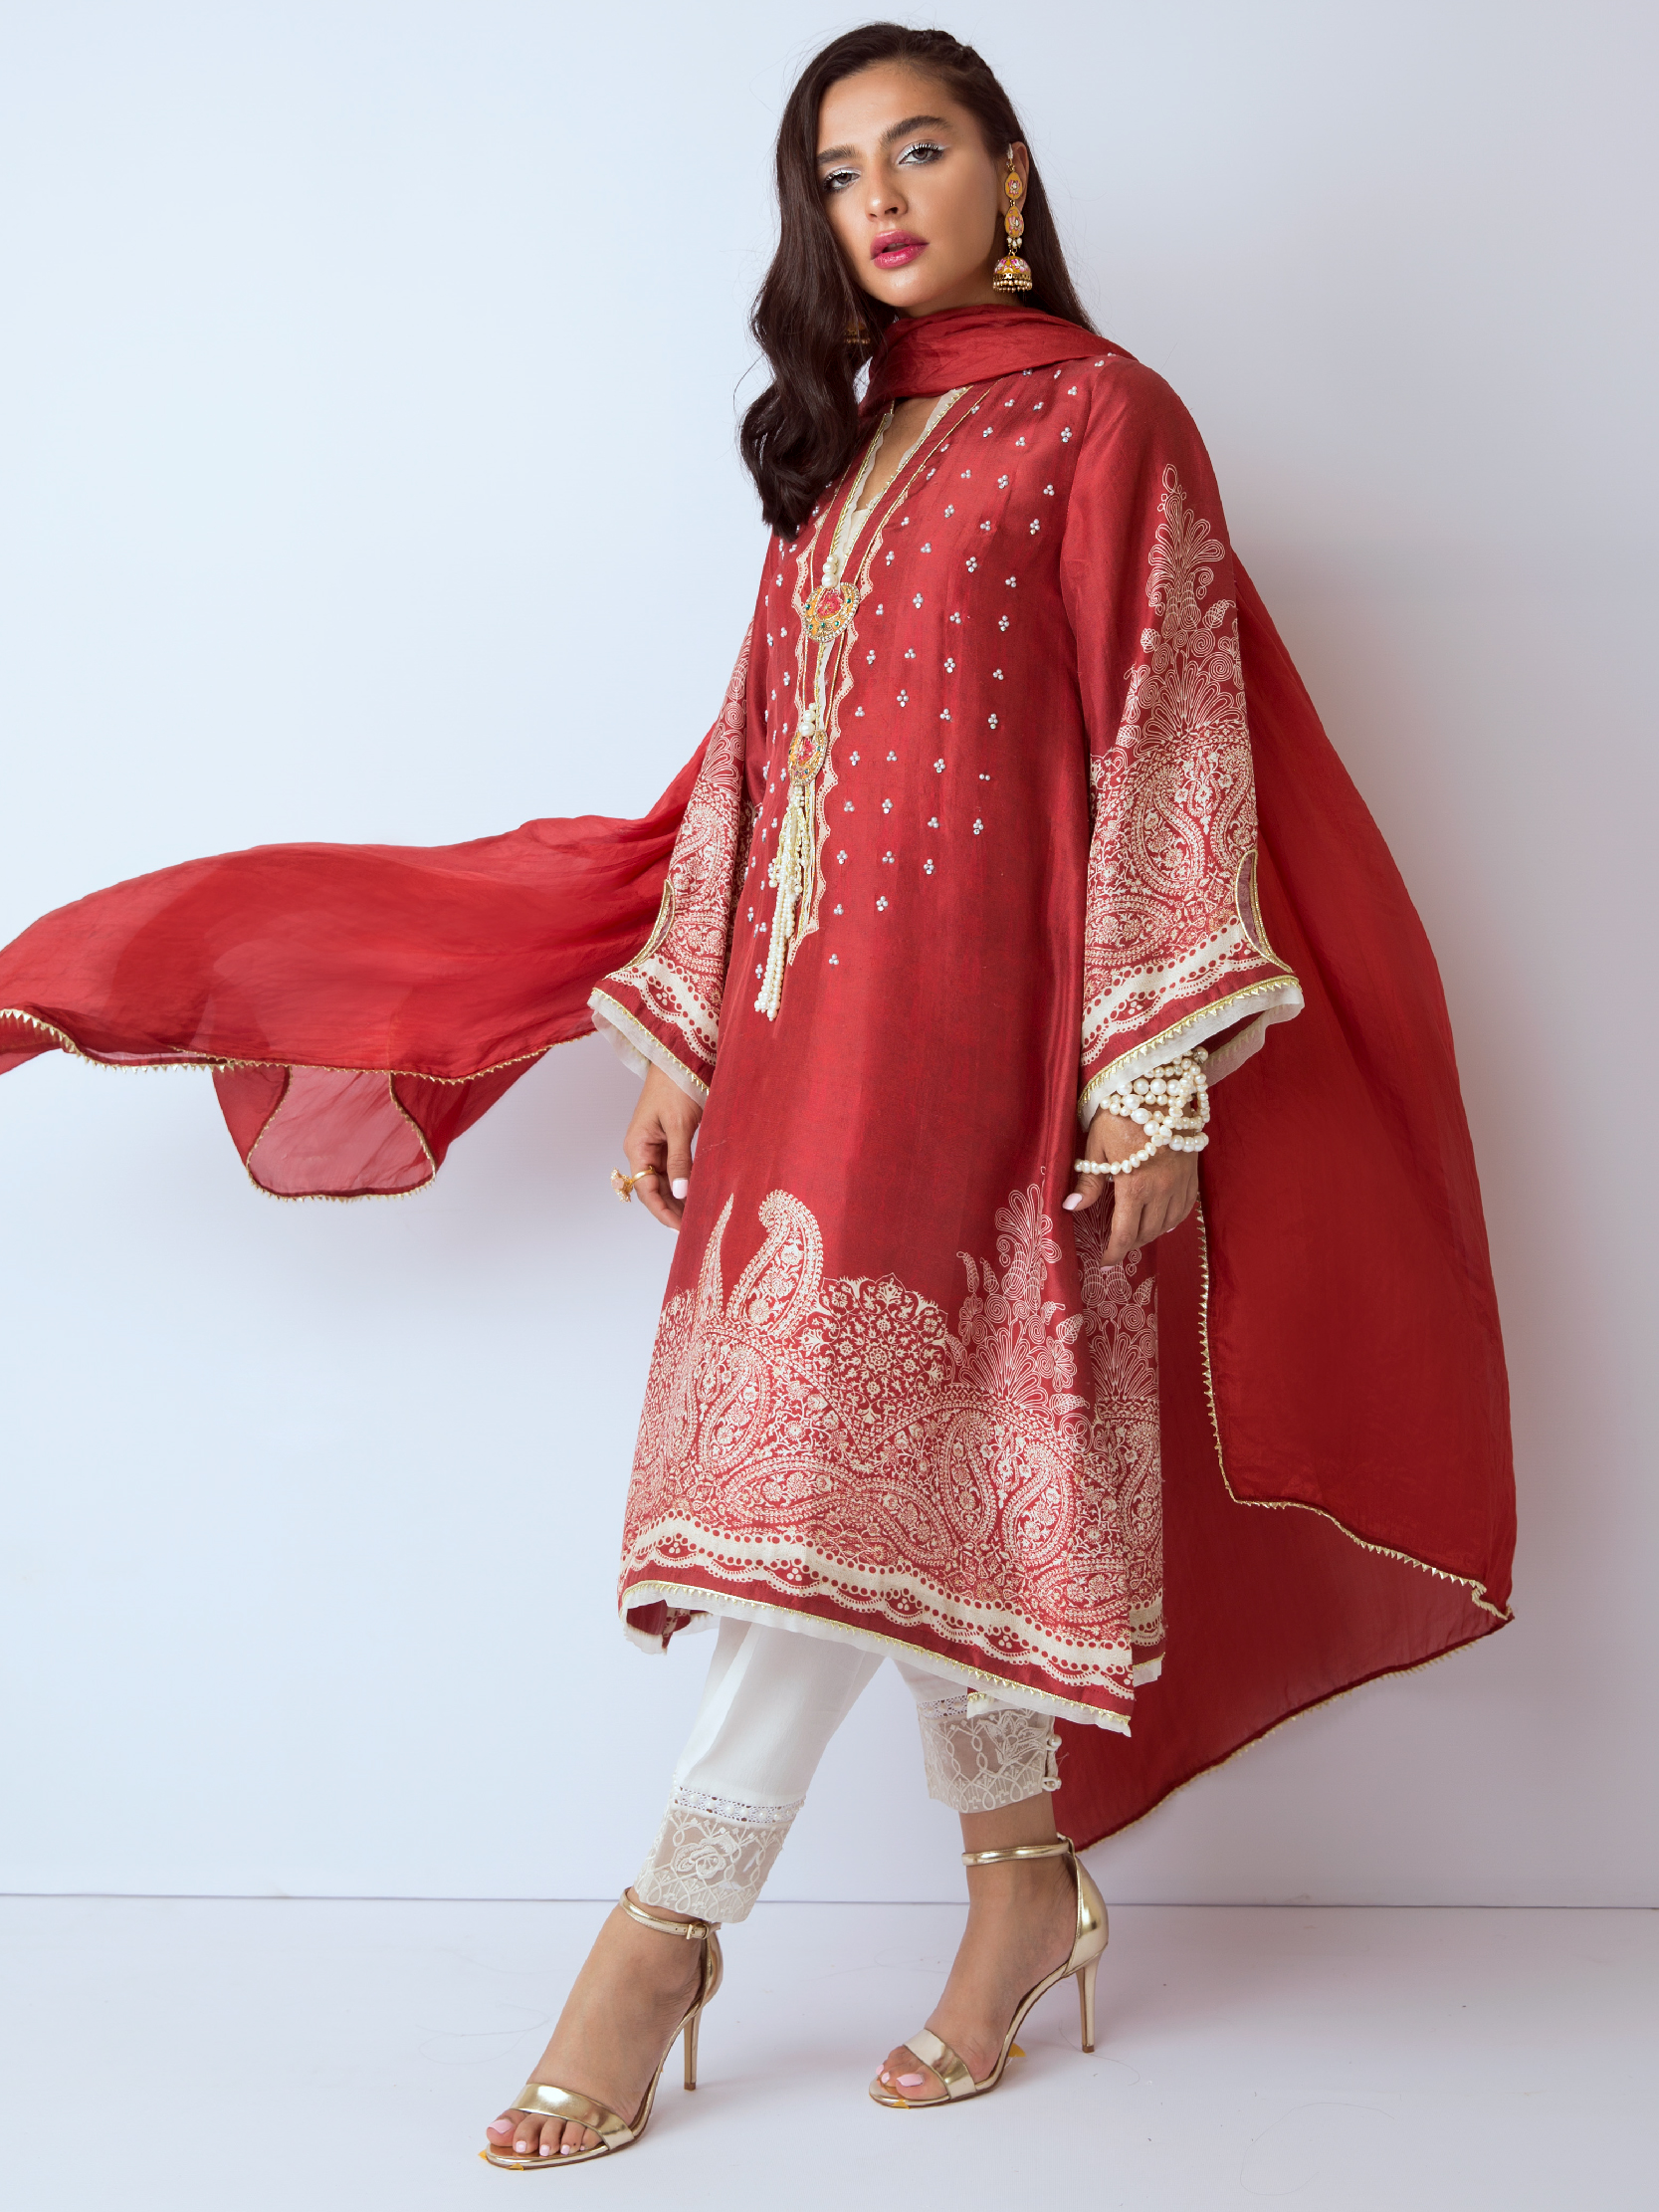 LAAL LUXE RAW SILK SHIRT AND DUPATTA